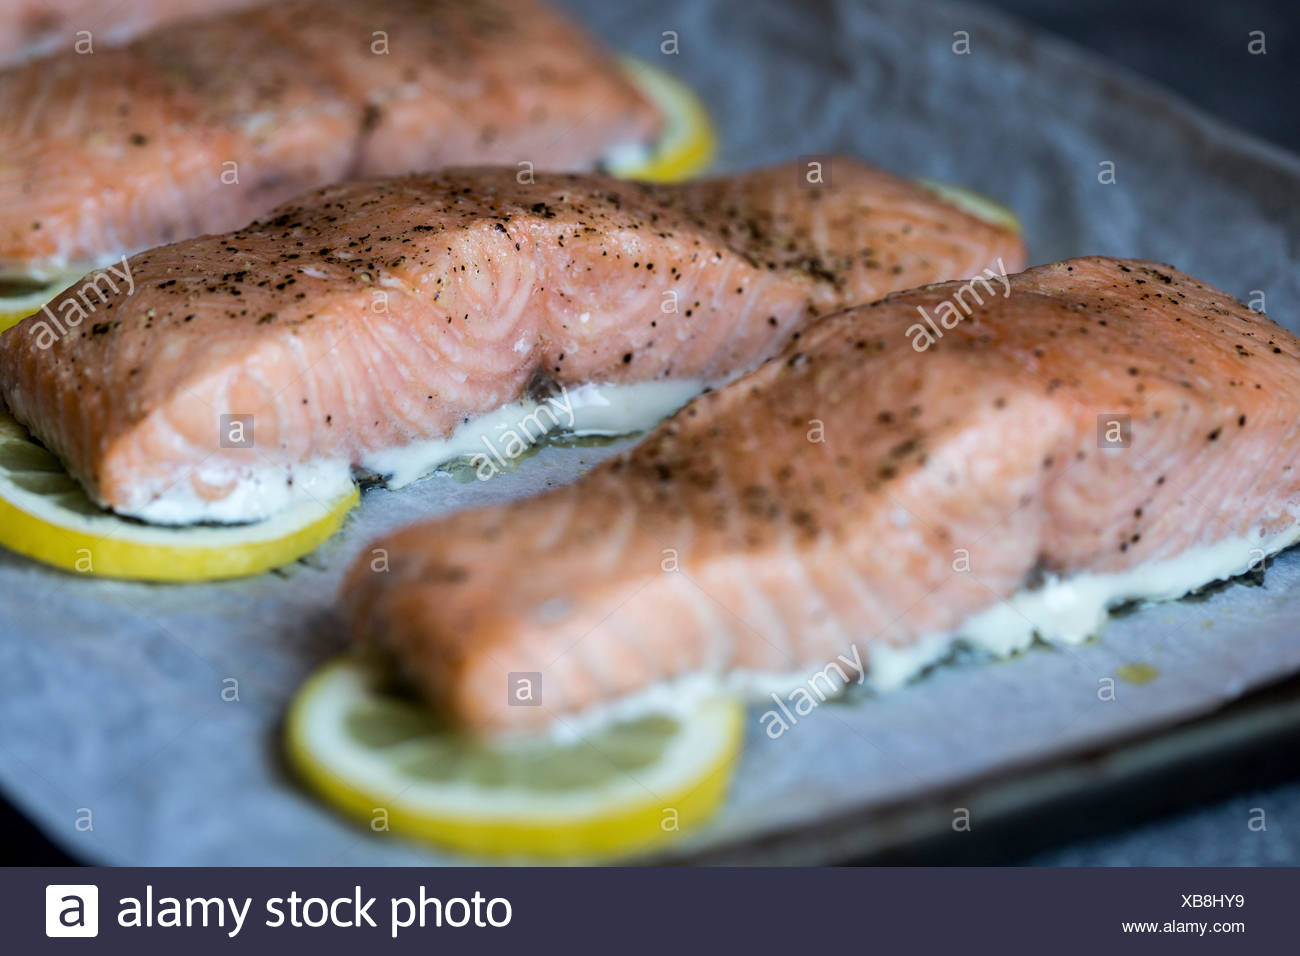 Slow-baked salmon slices are photographed right after they came out of the oven. - Stock Image